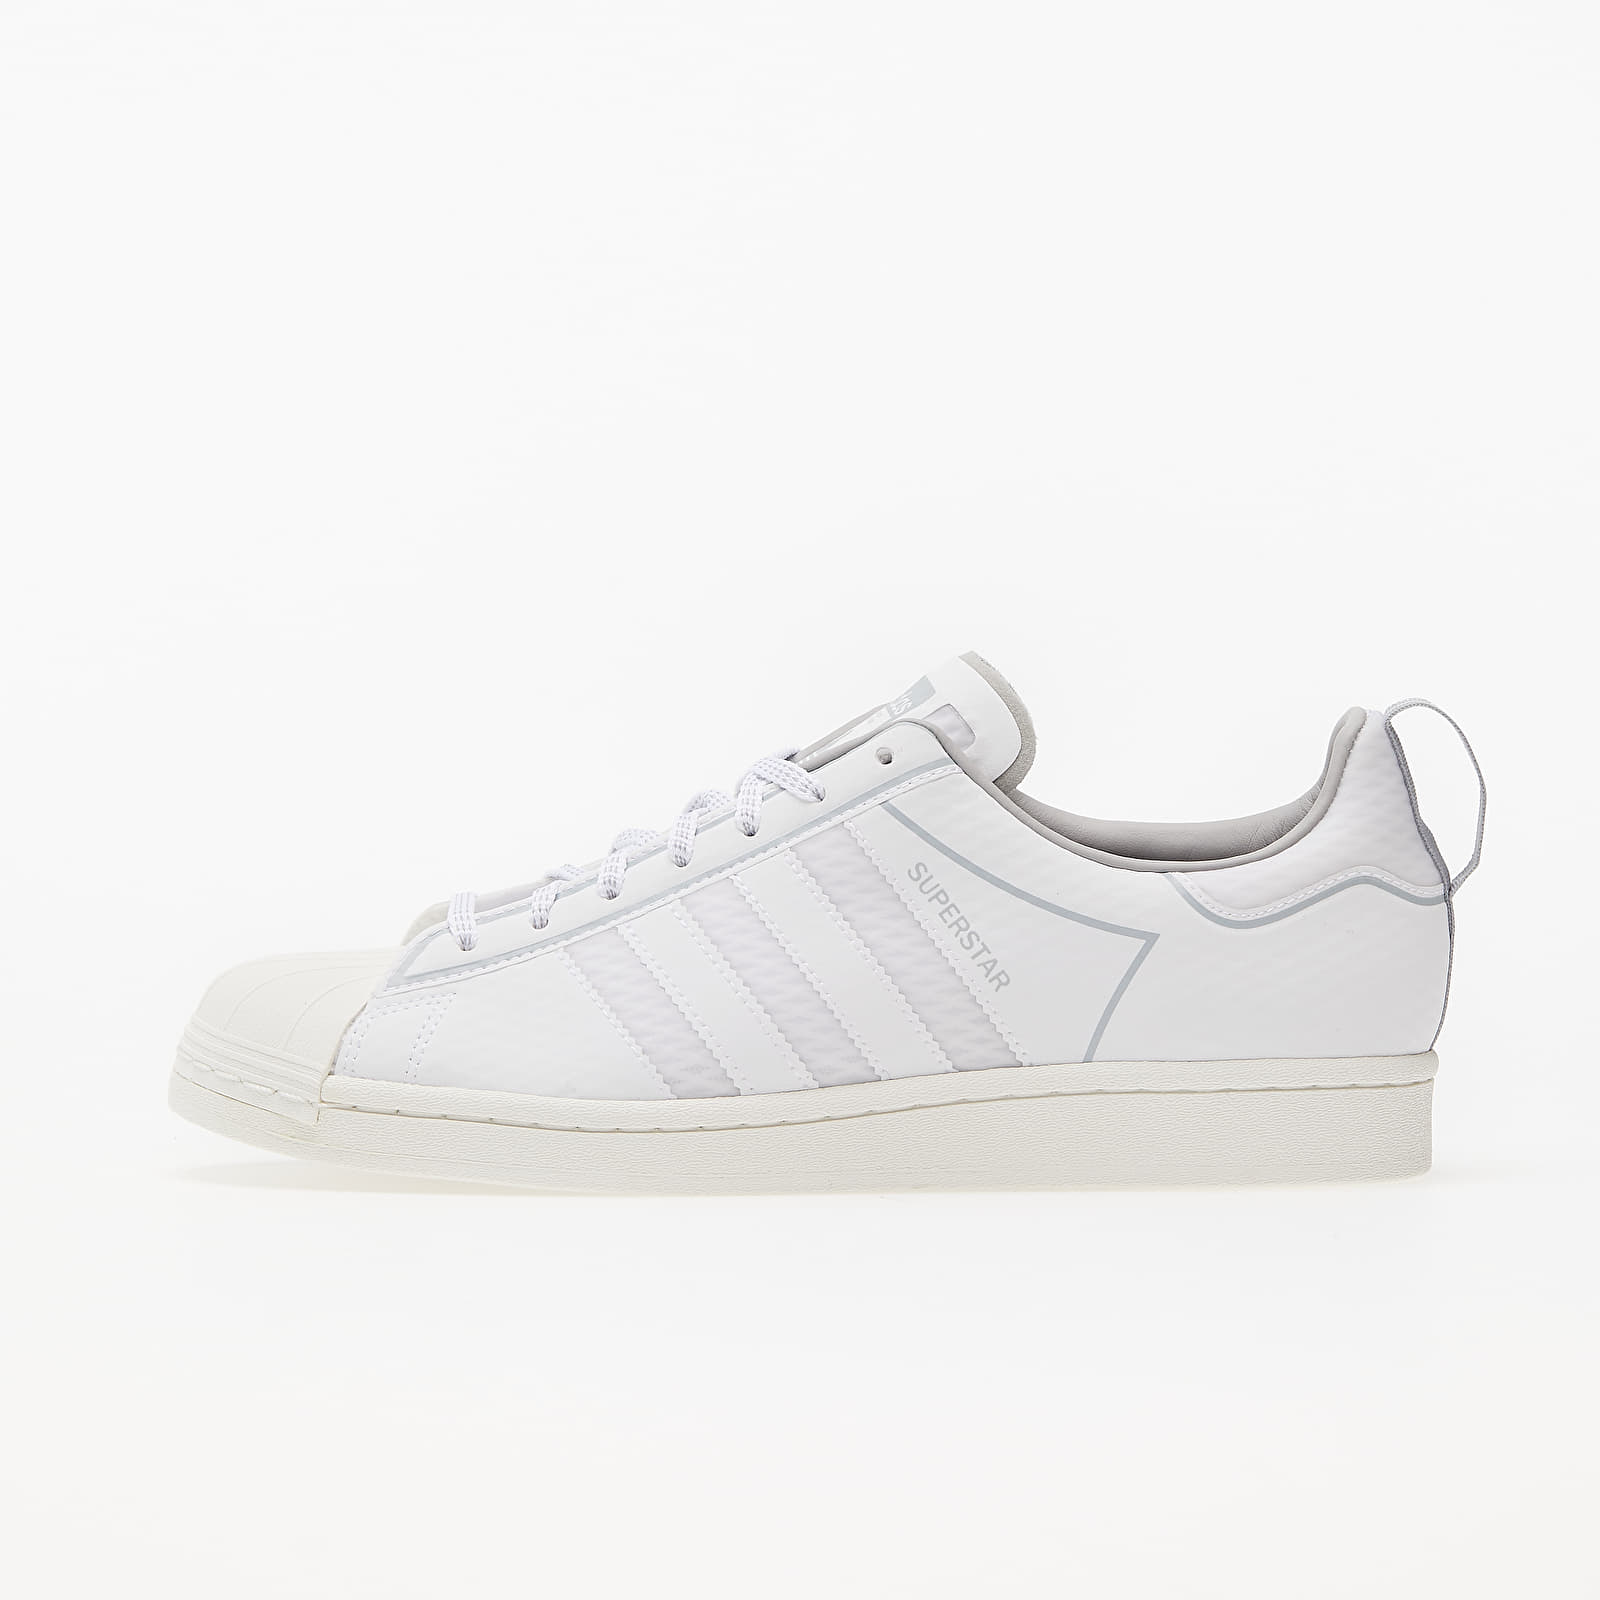 Men's shoes adidas Superstar Ftw White/ Off White/ Grey One